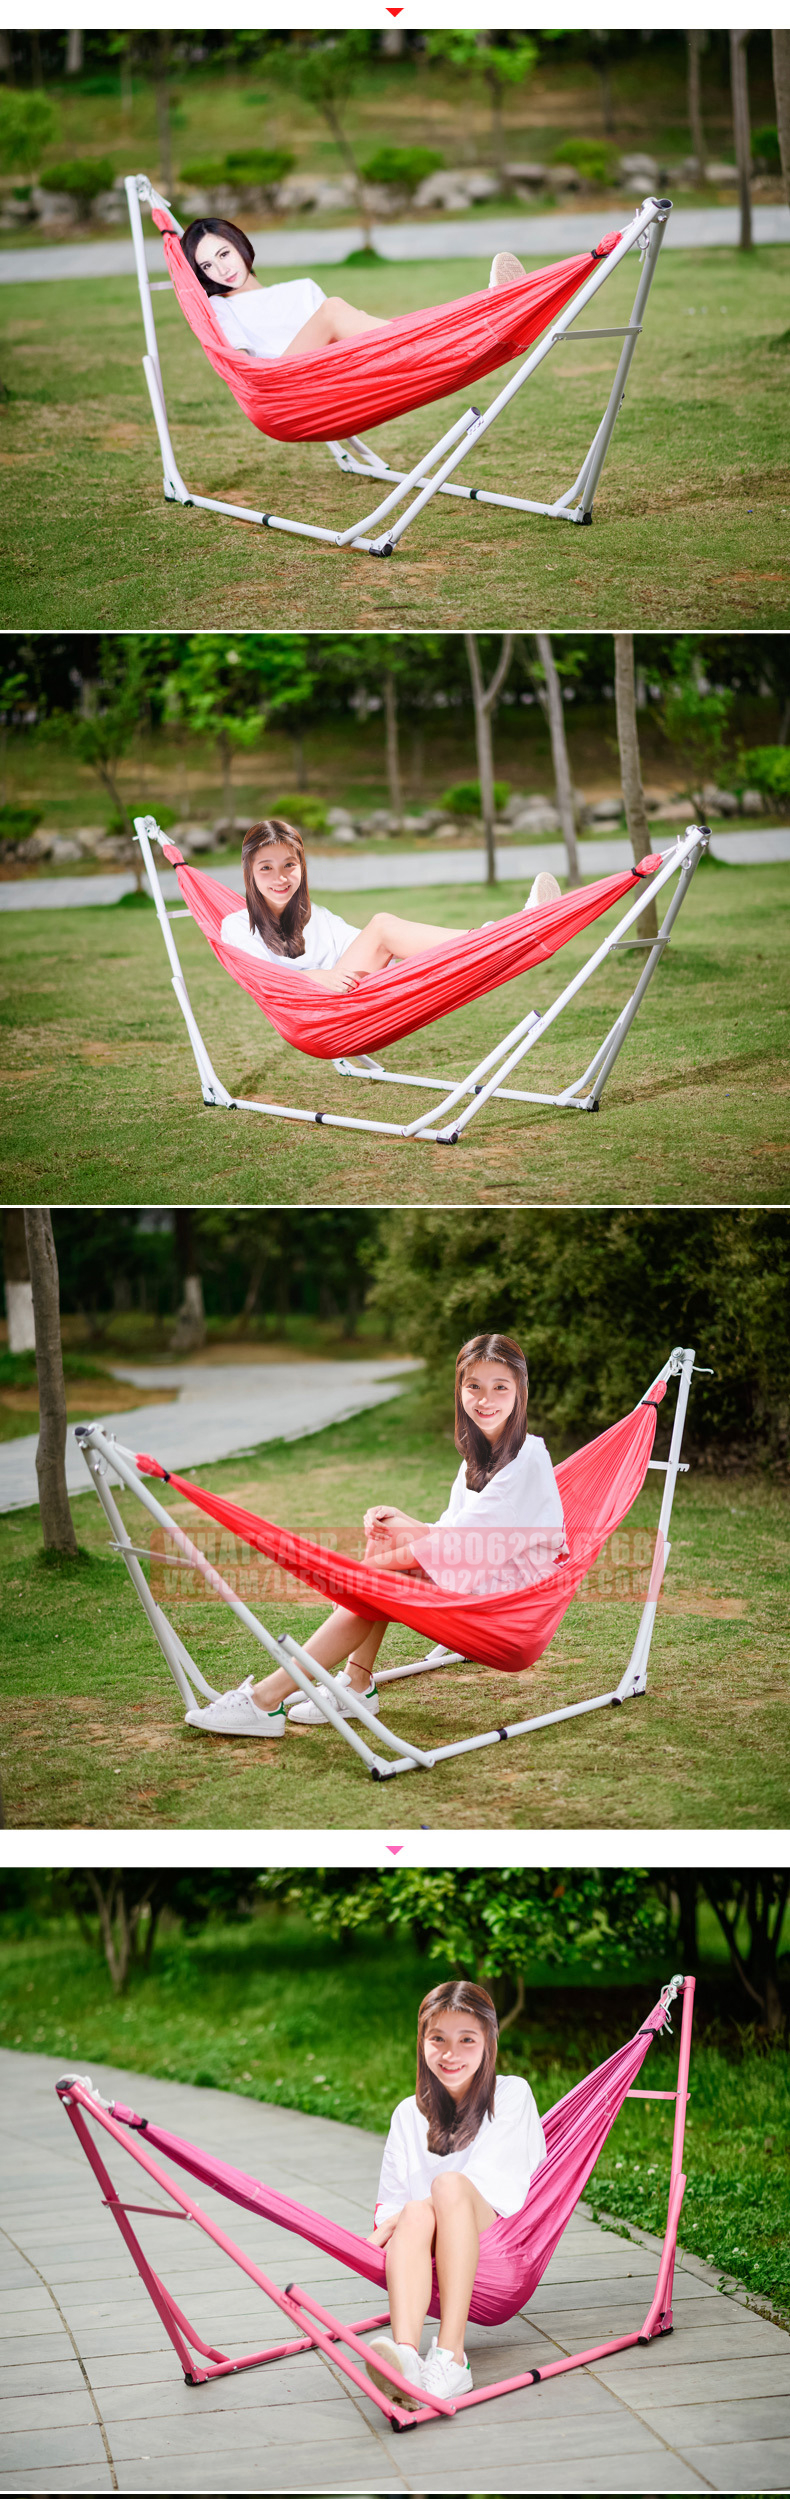 mother baby swing (9)